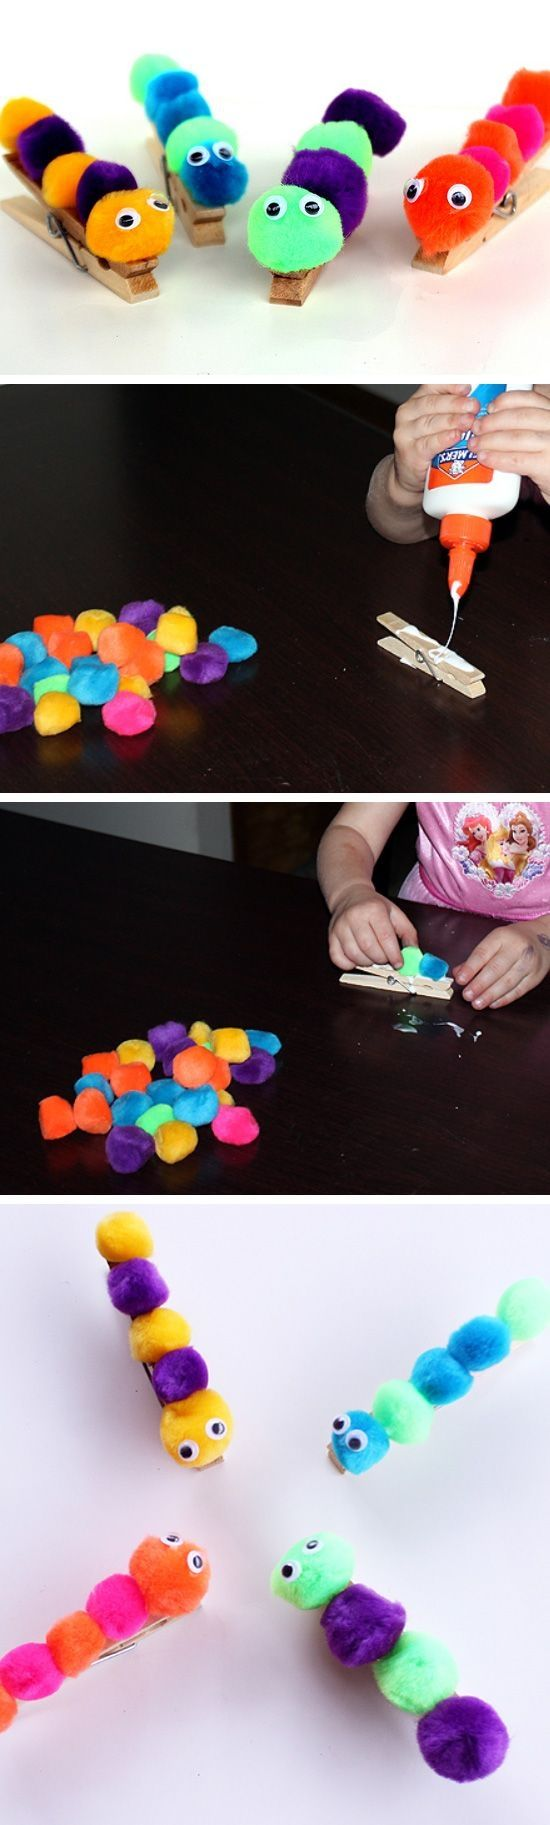 Stick pins for crafts - Find This Pin And More On Crafts For Kids